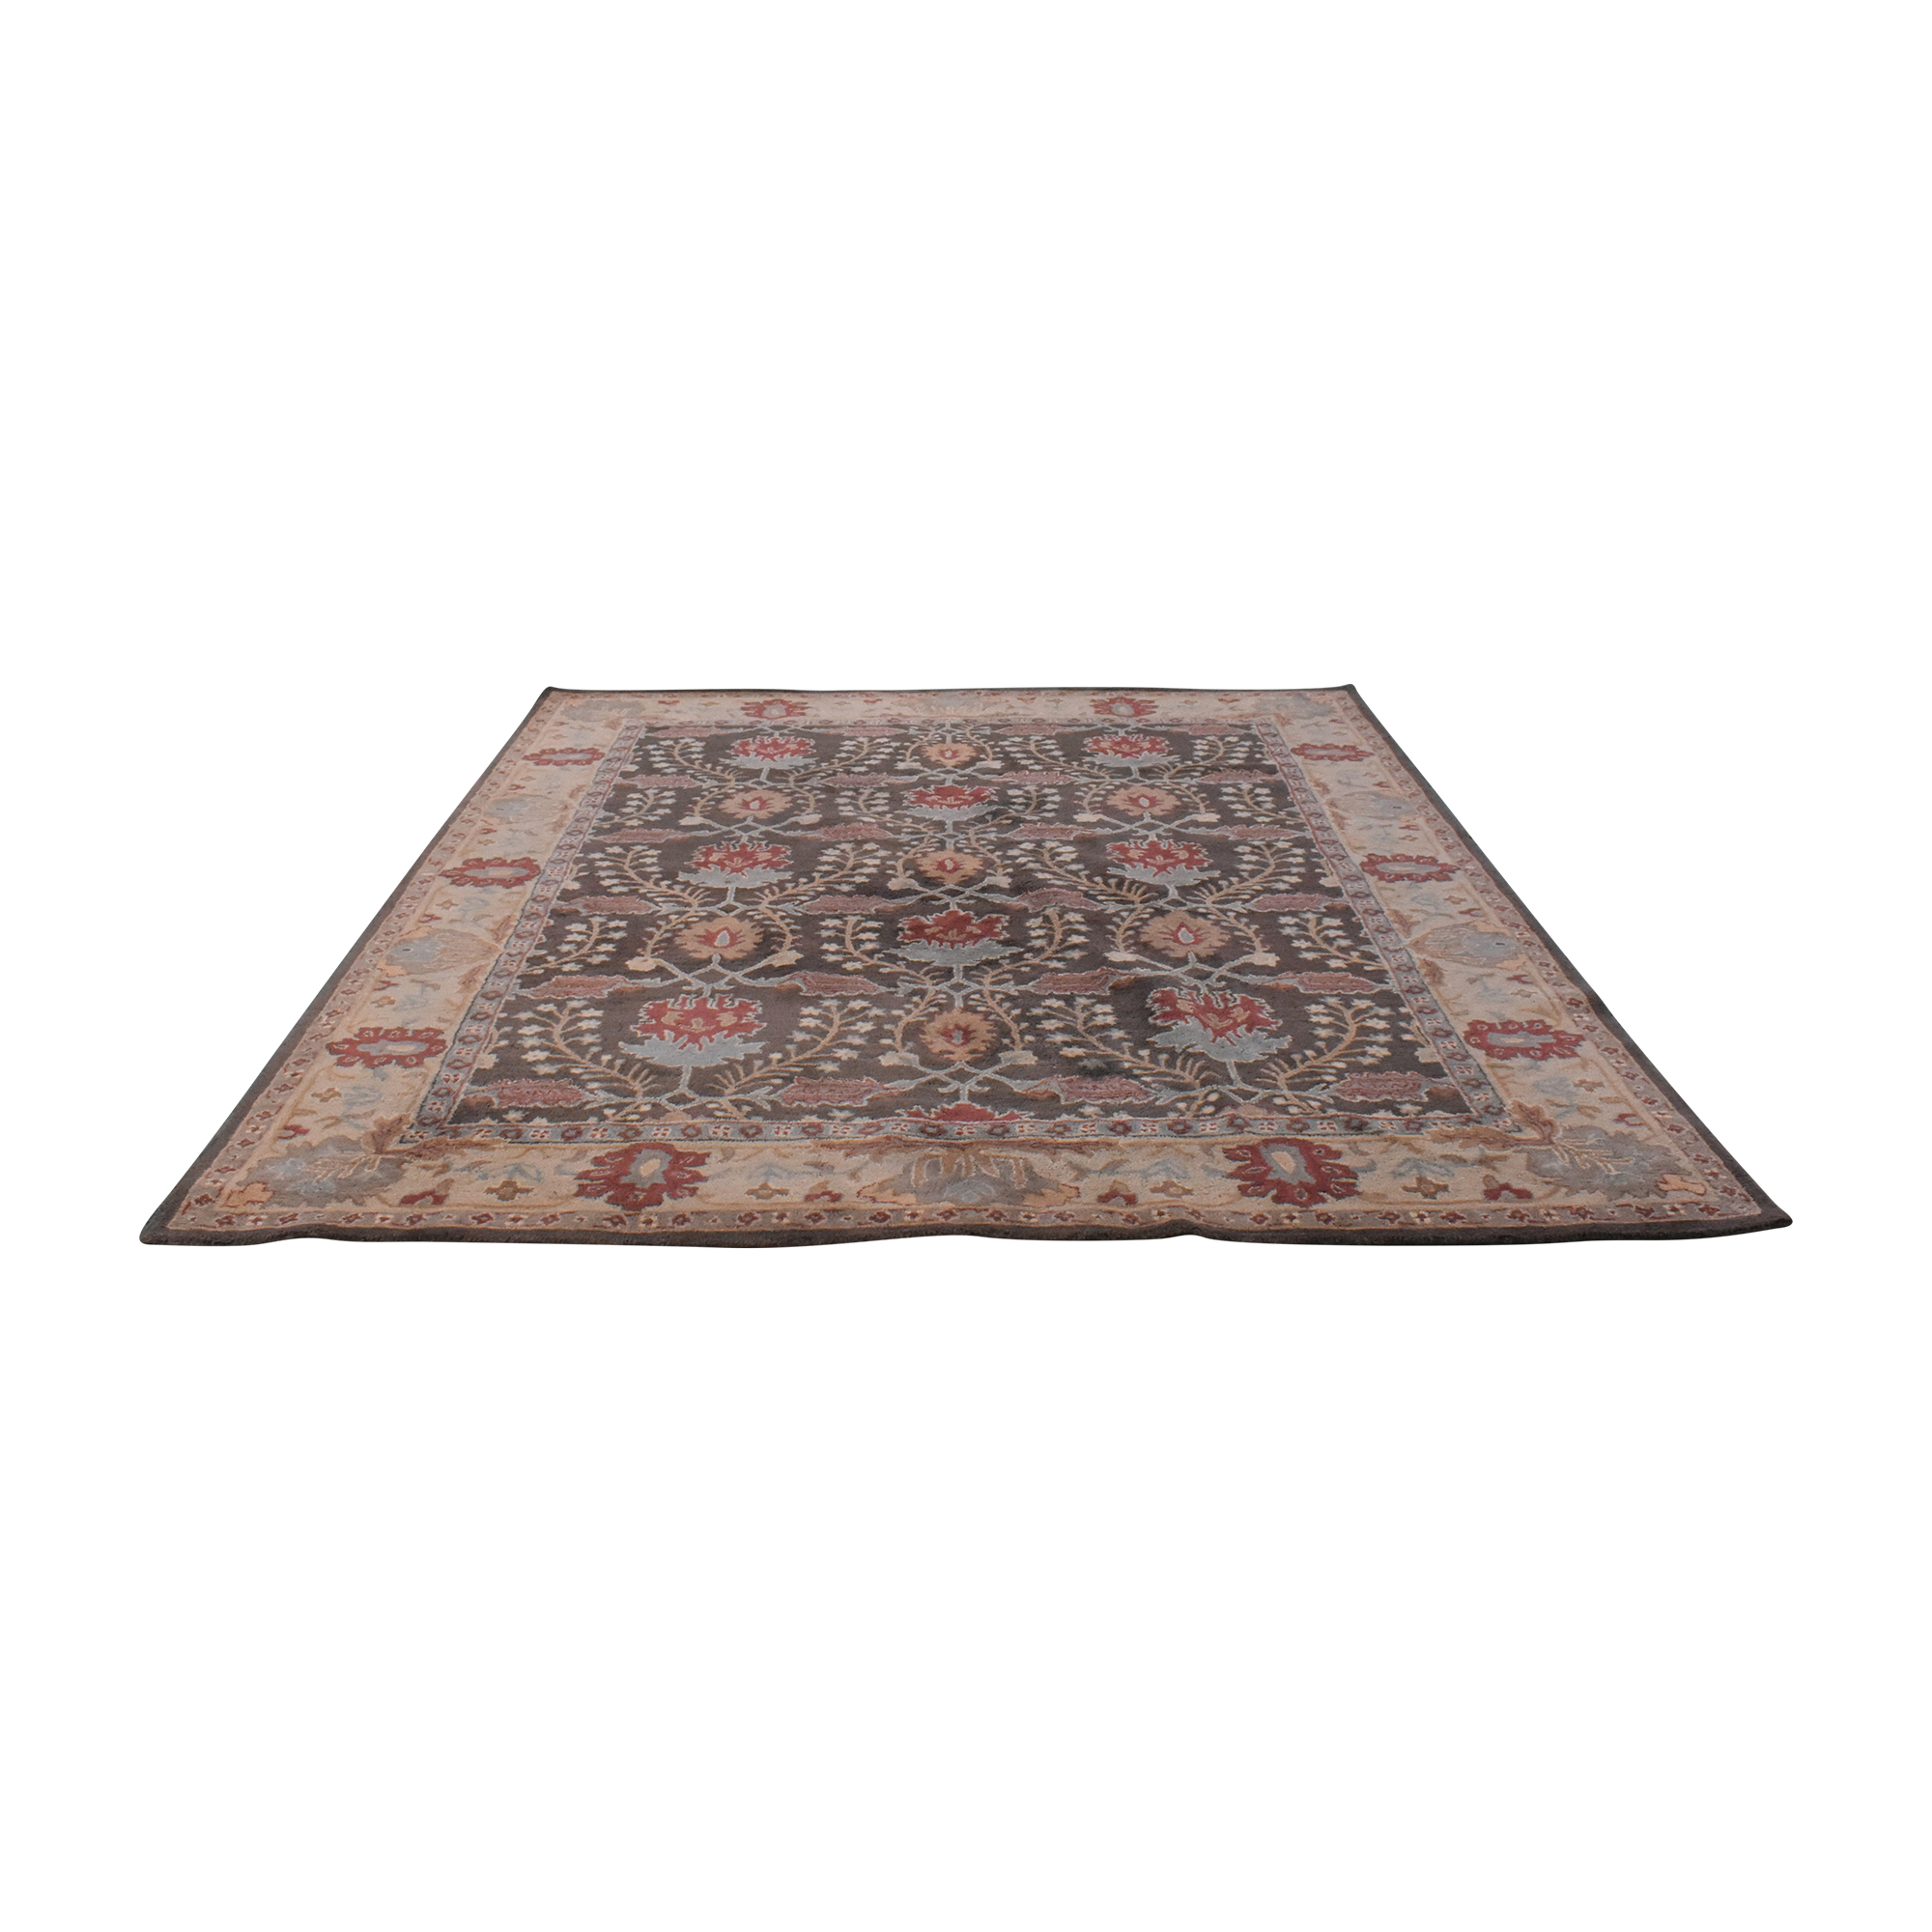 Pottery Barn Pottery Barn Brandon Persian-Style Rug brown